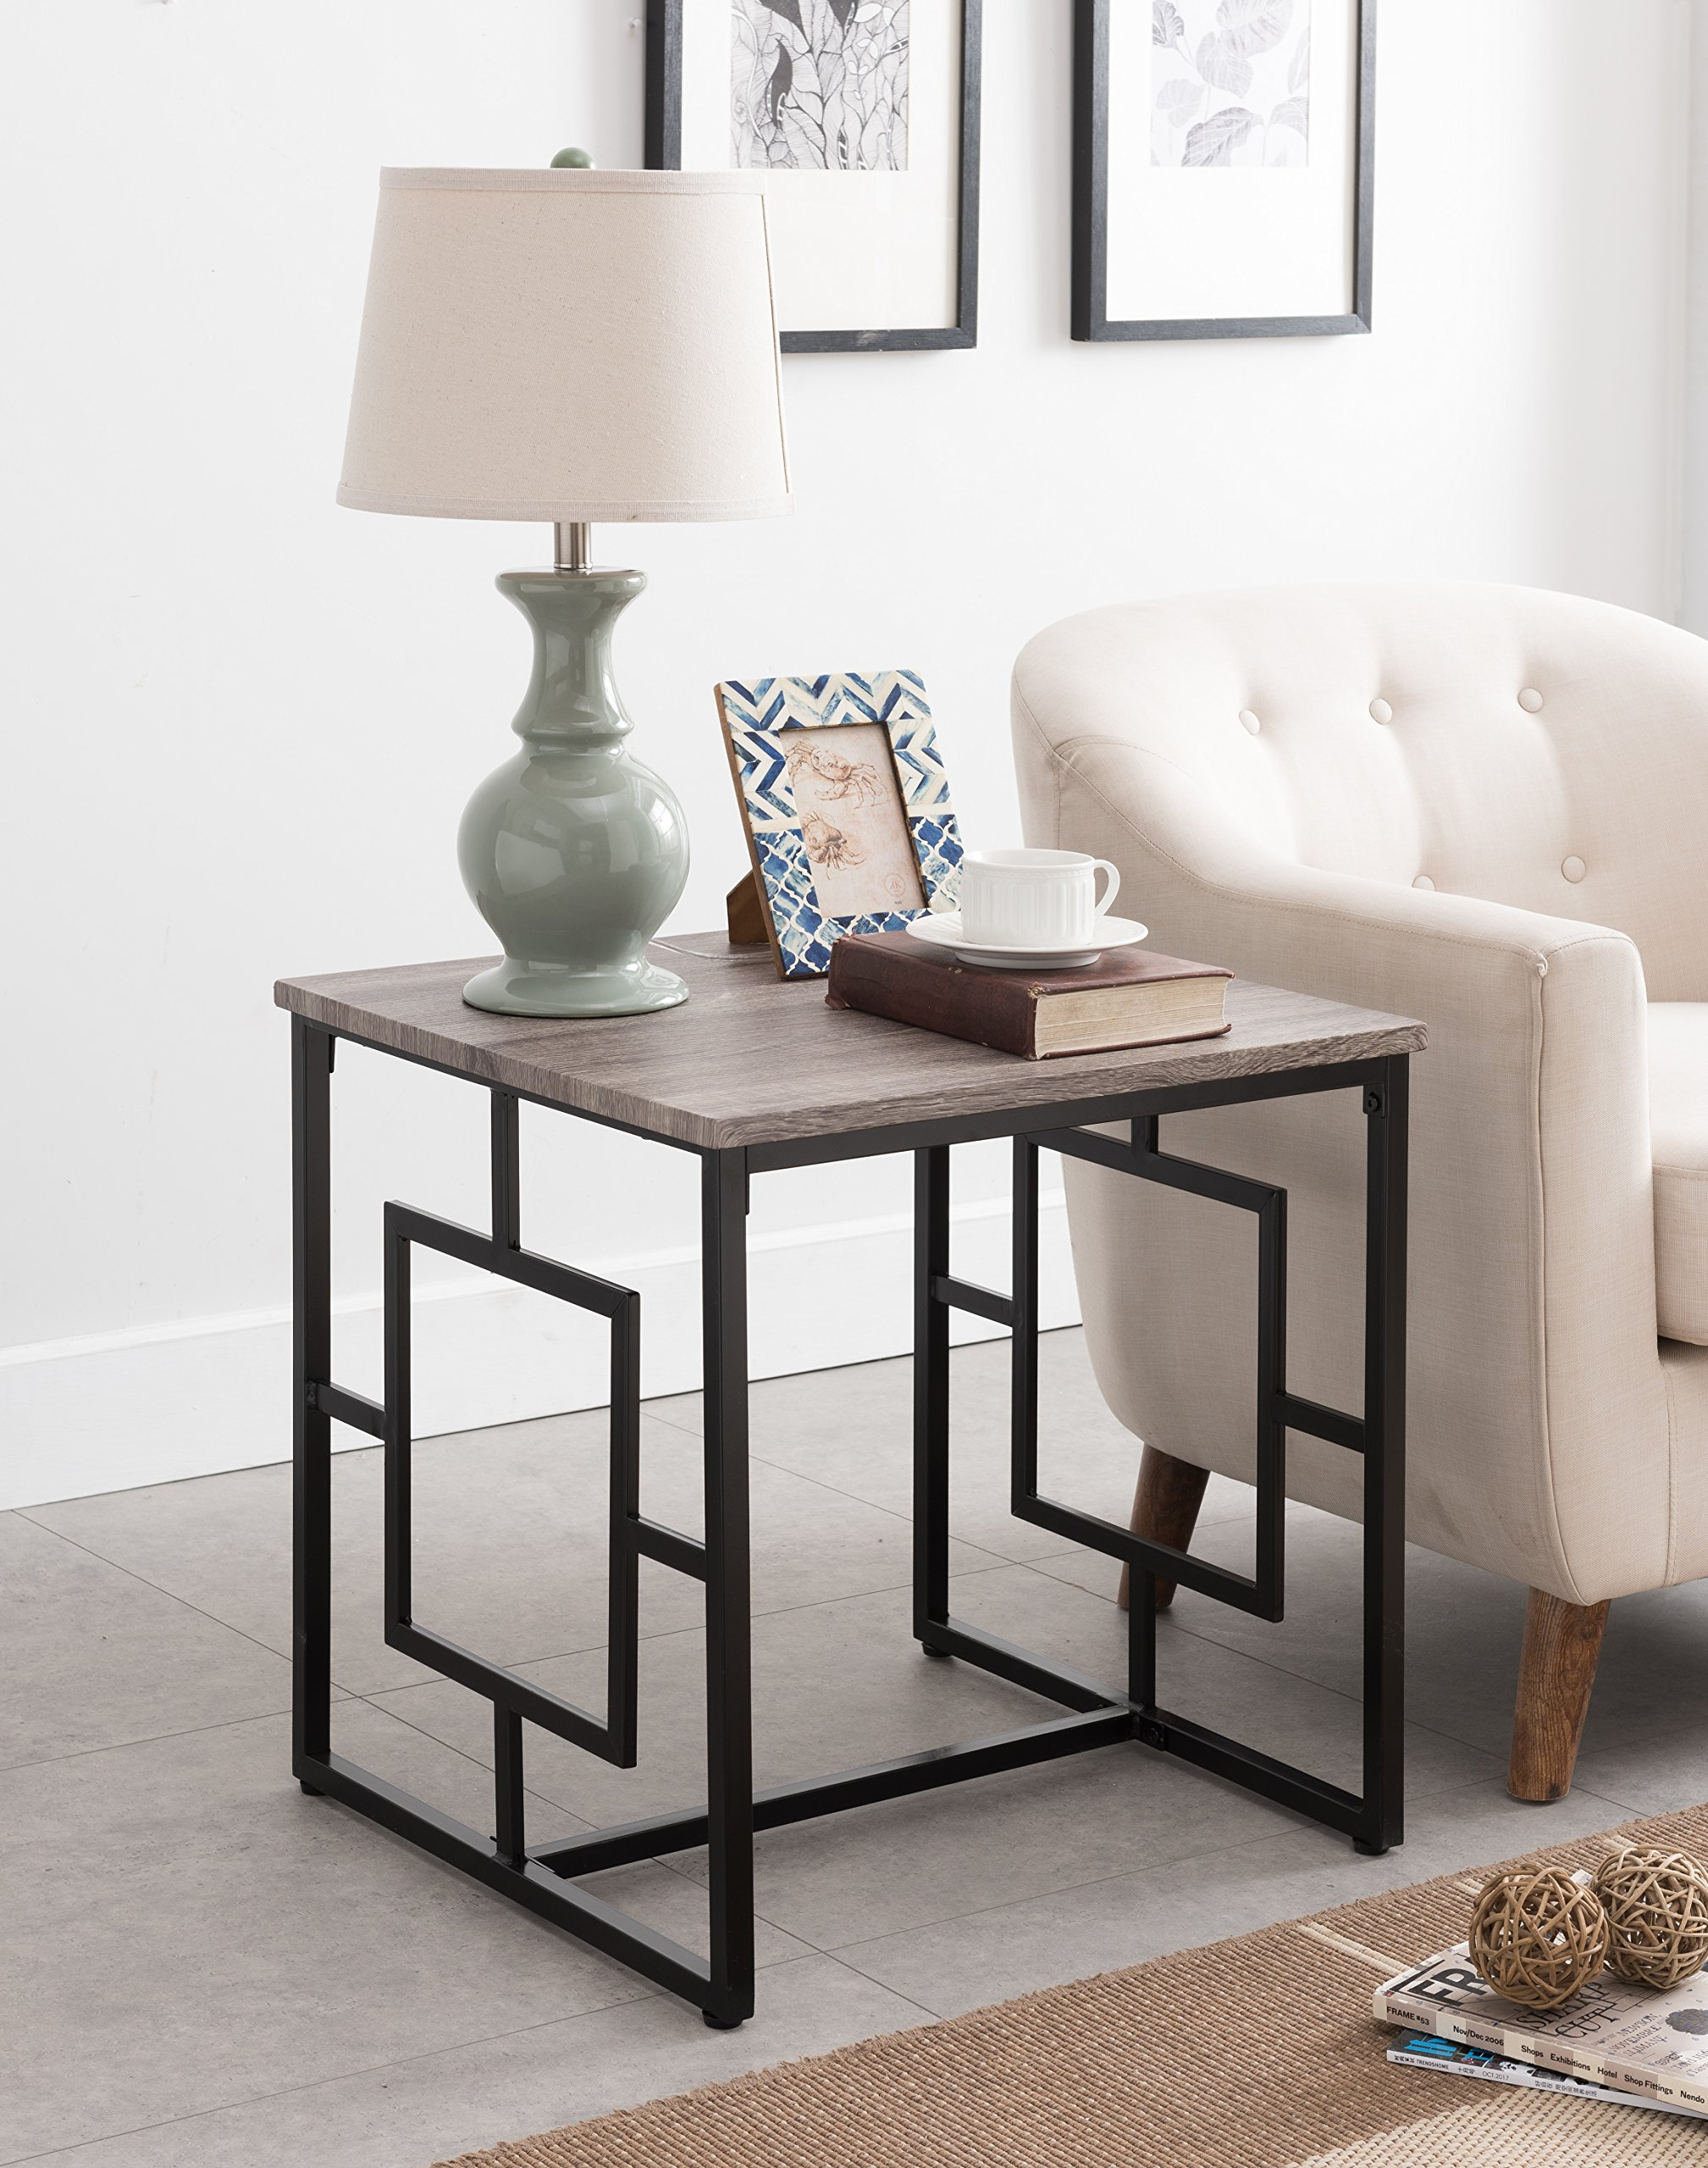 """Weathered Grey Oak / Black Frame Square Design Side End Table 22""""H - Color: Weathered Grey Oak and Black Material: Metal, MDF/Hardwood Features large table square surface for display - living-room-furniture, living-room, end-tables - 914ae9RyVxL -"""